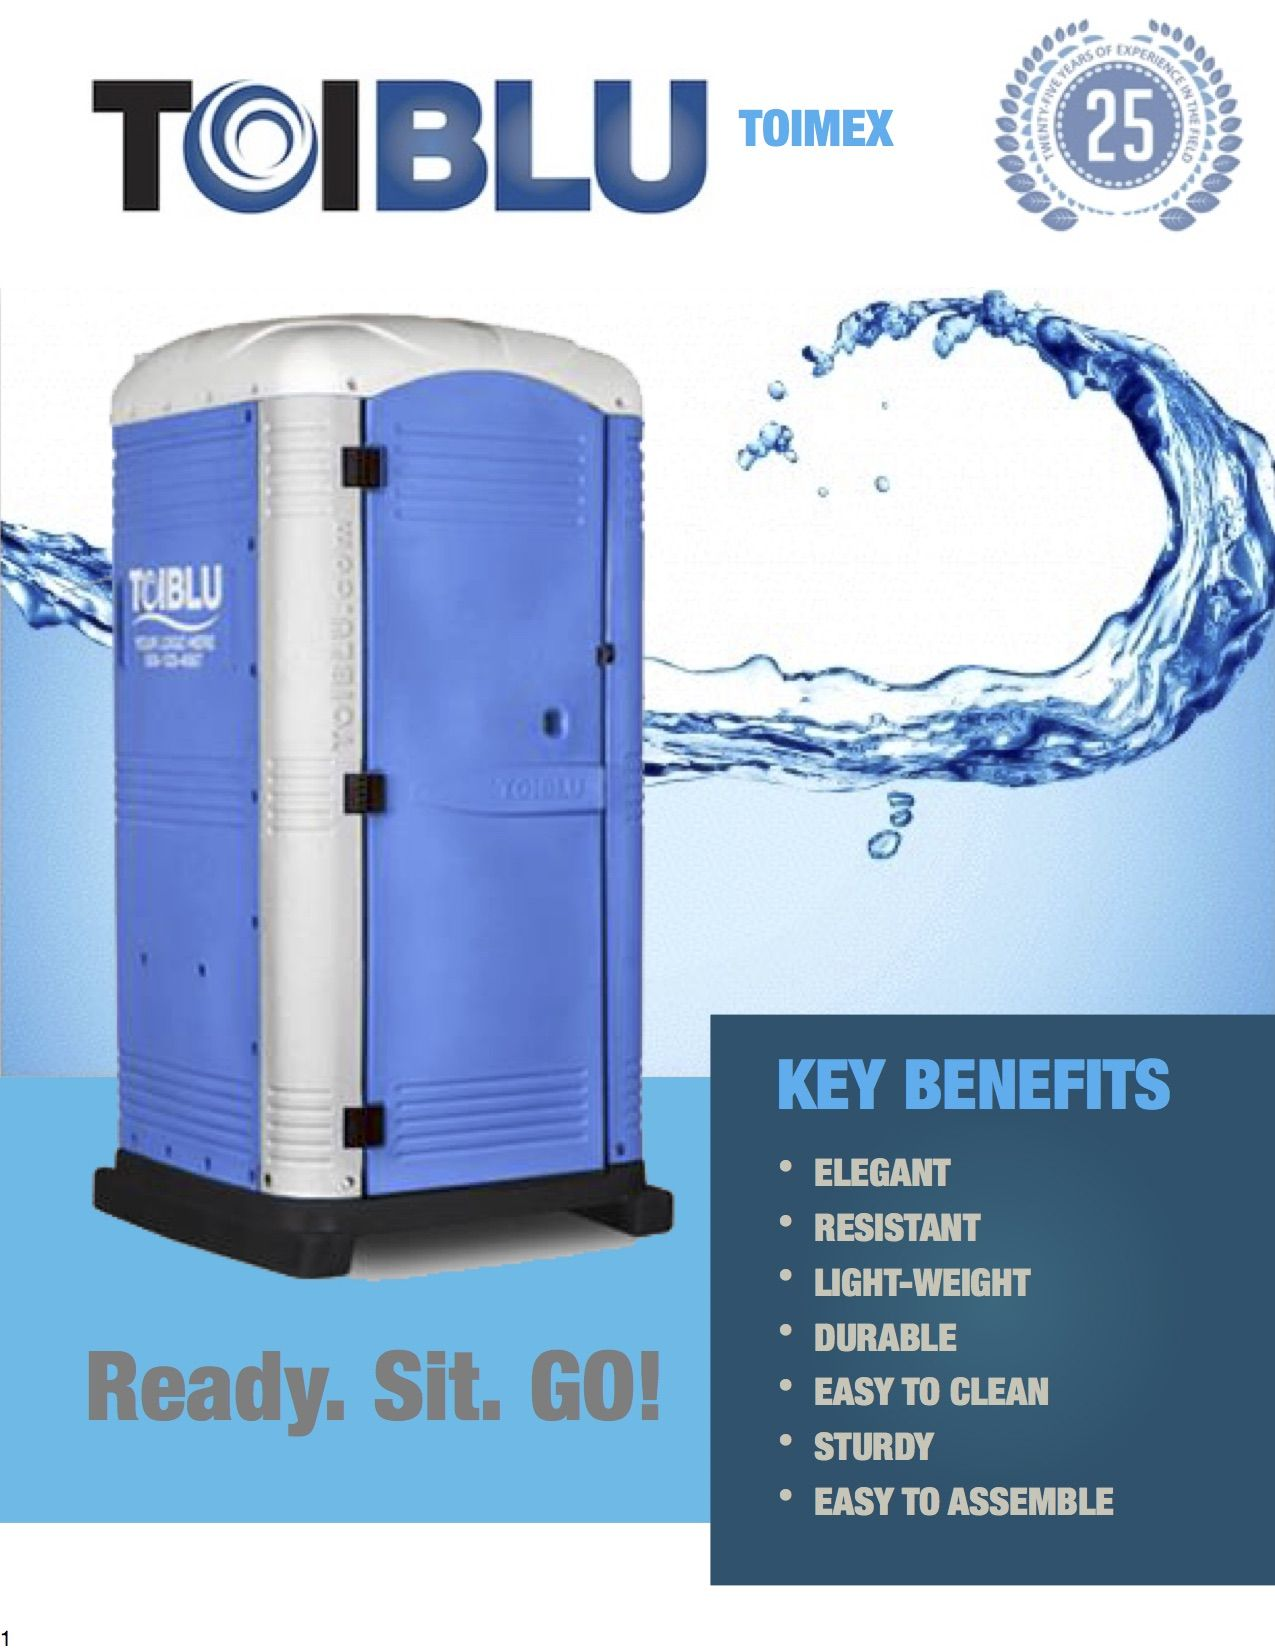 toimex is the first portable toilet manufactured in mexico portable